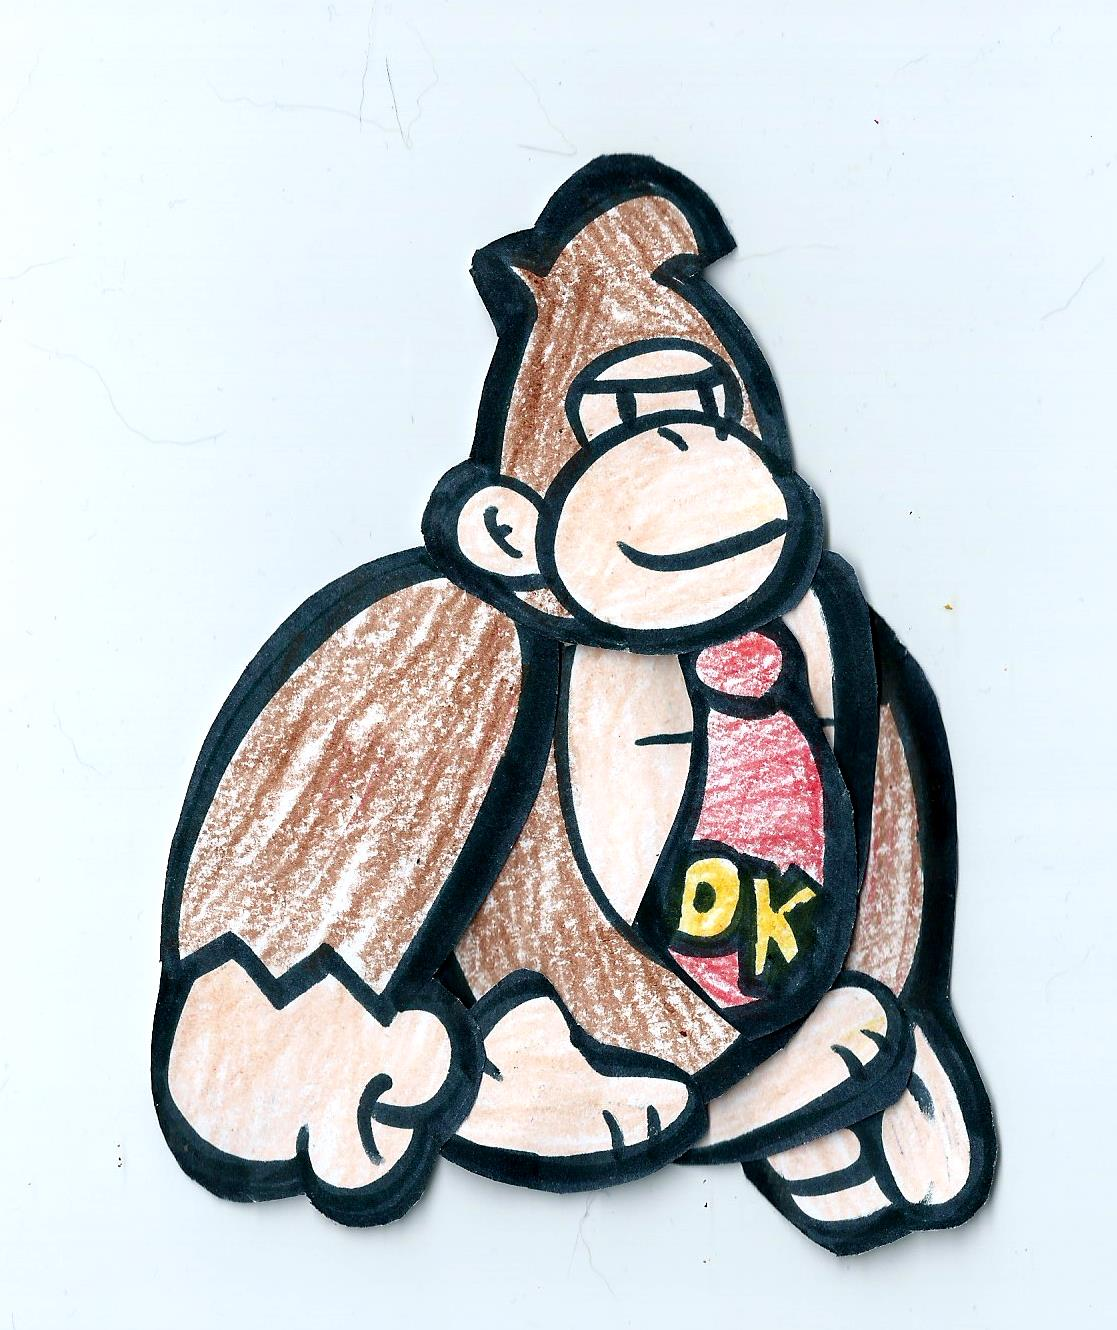 paper mario style donkey kong by greenlightning57 on